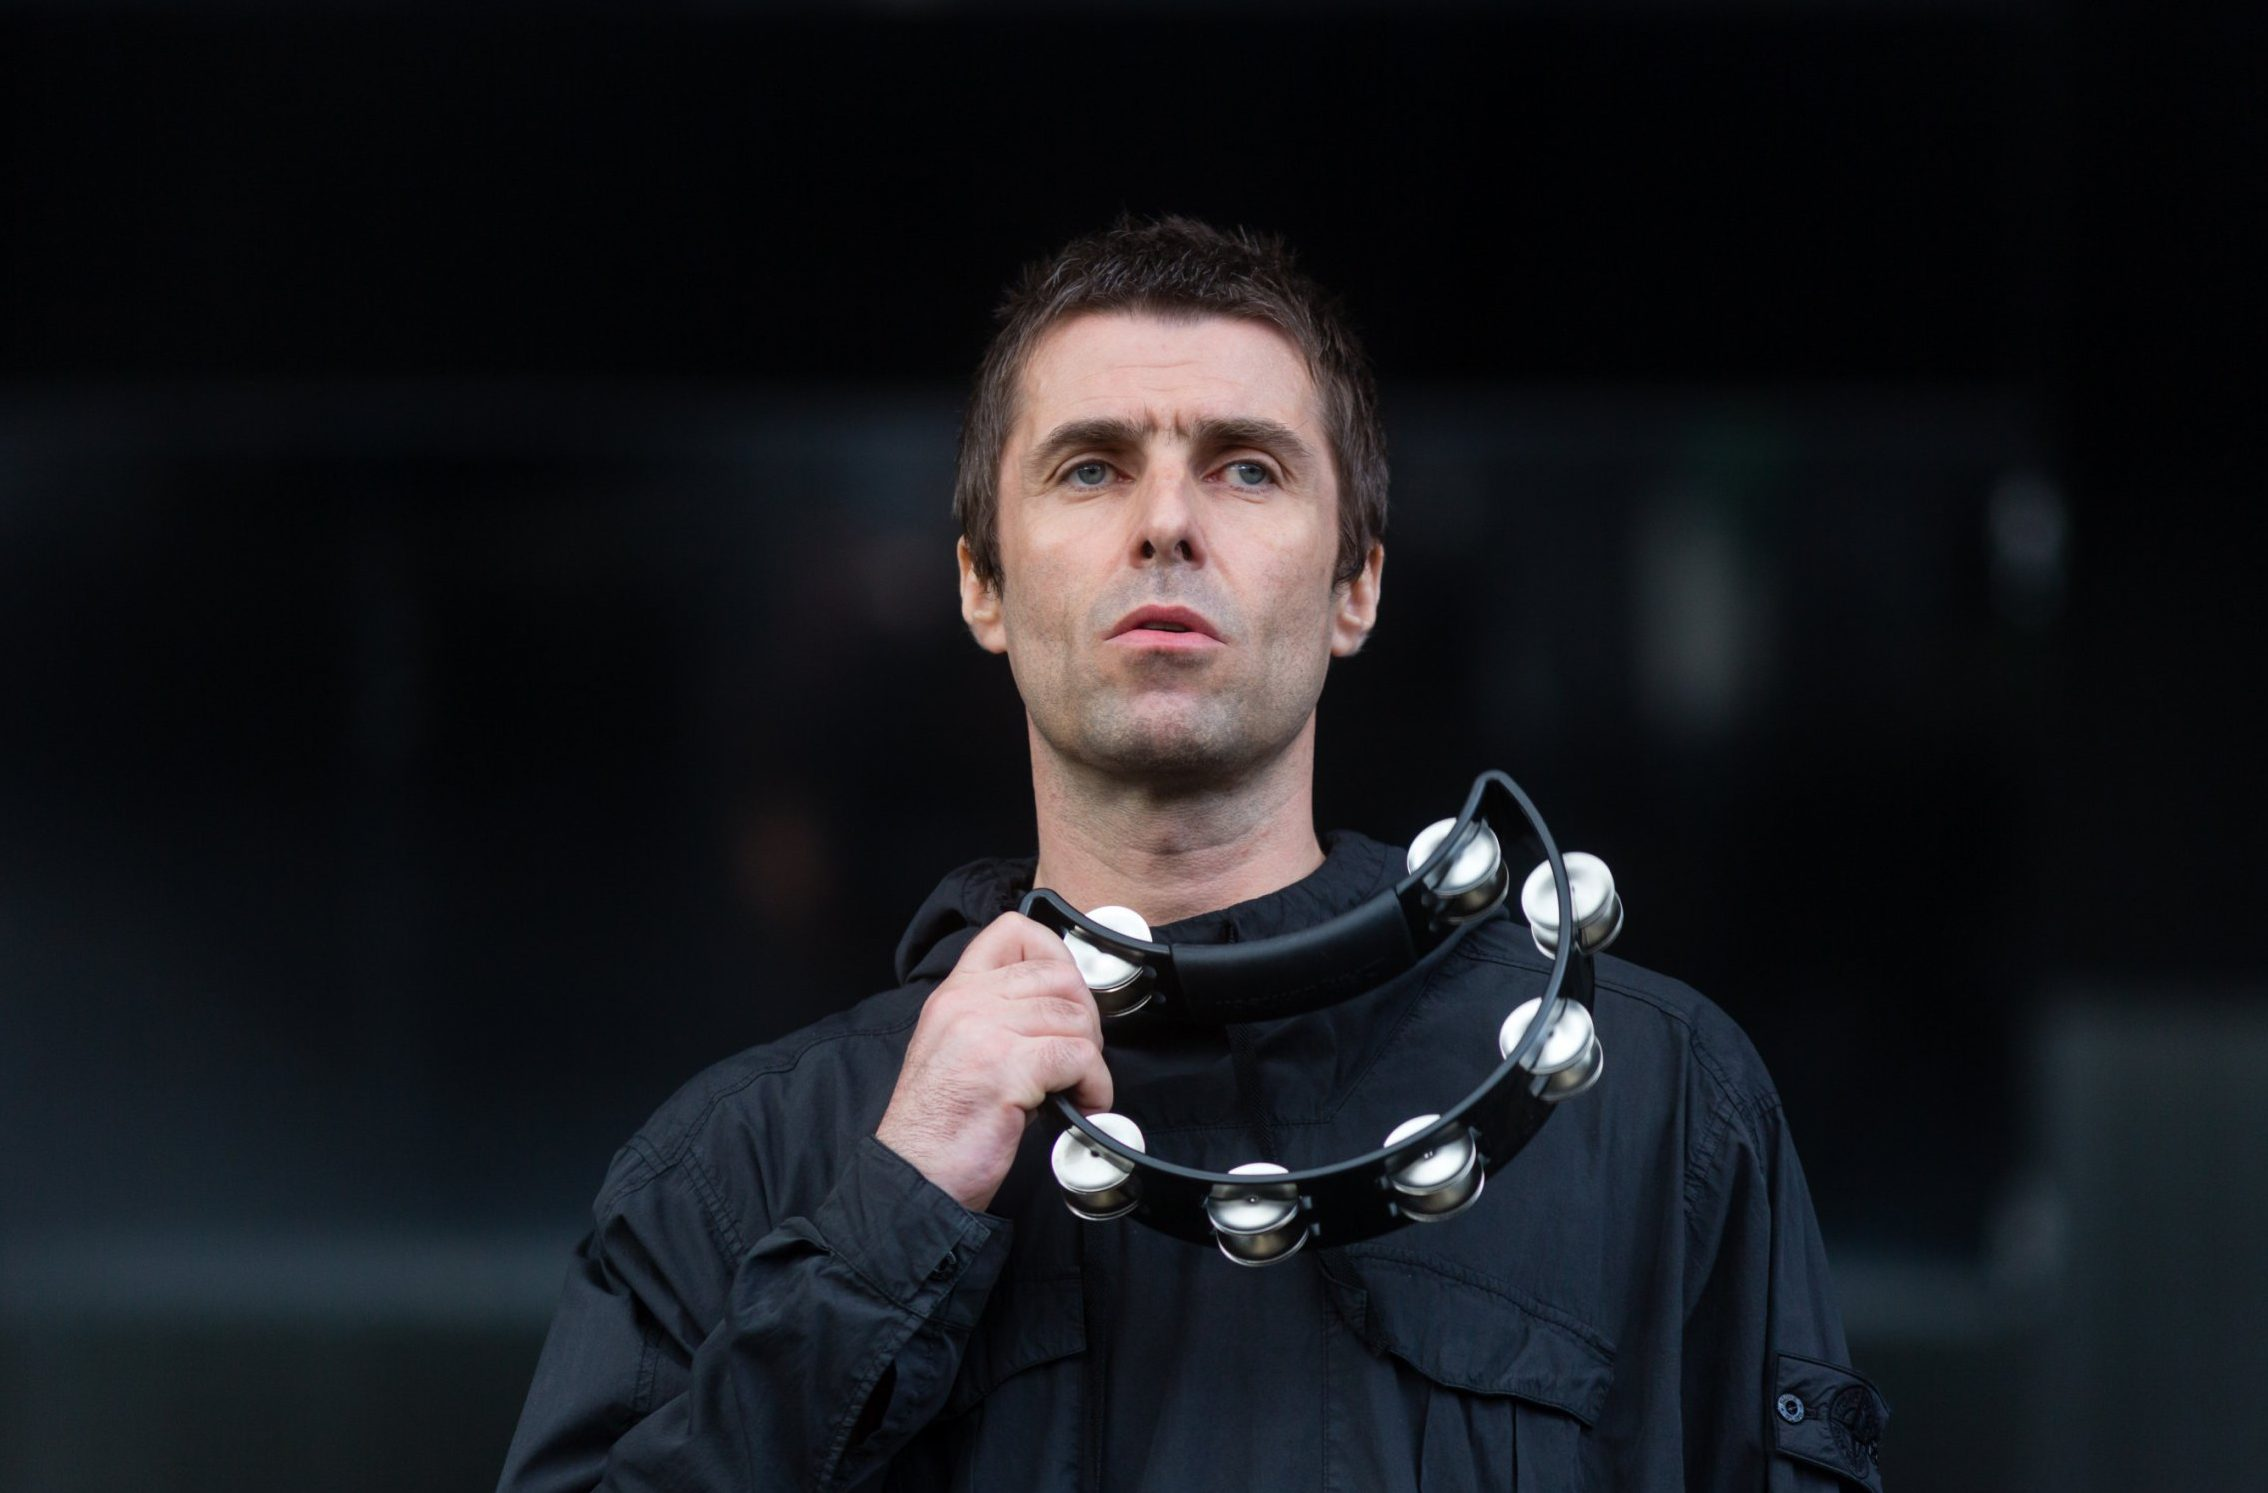 Liam Gallagher makes history as he performs Don't Look Back In Anger at Glastonbury